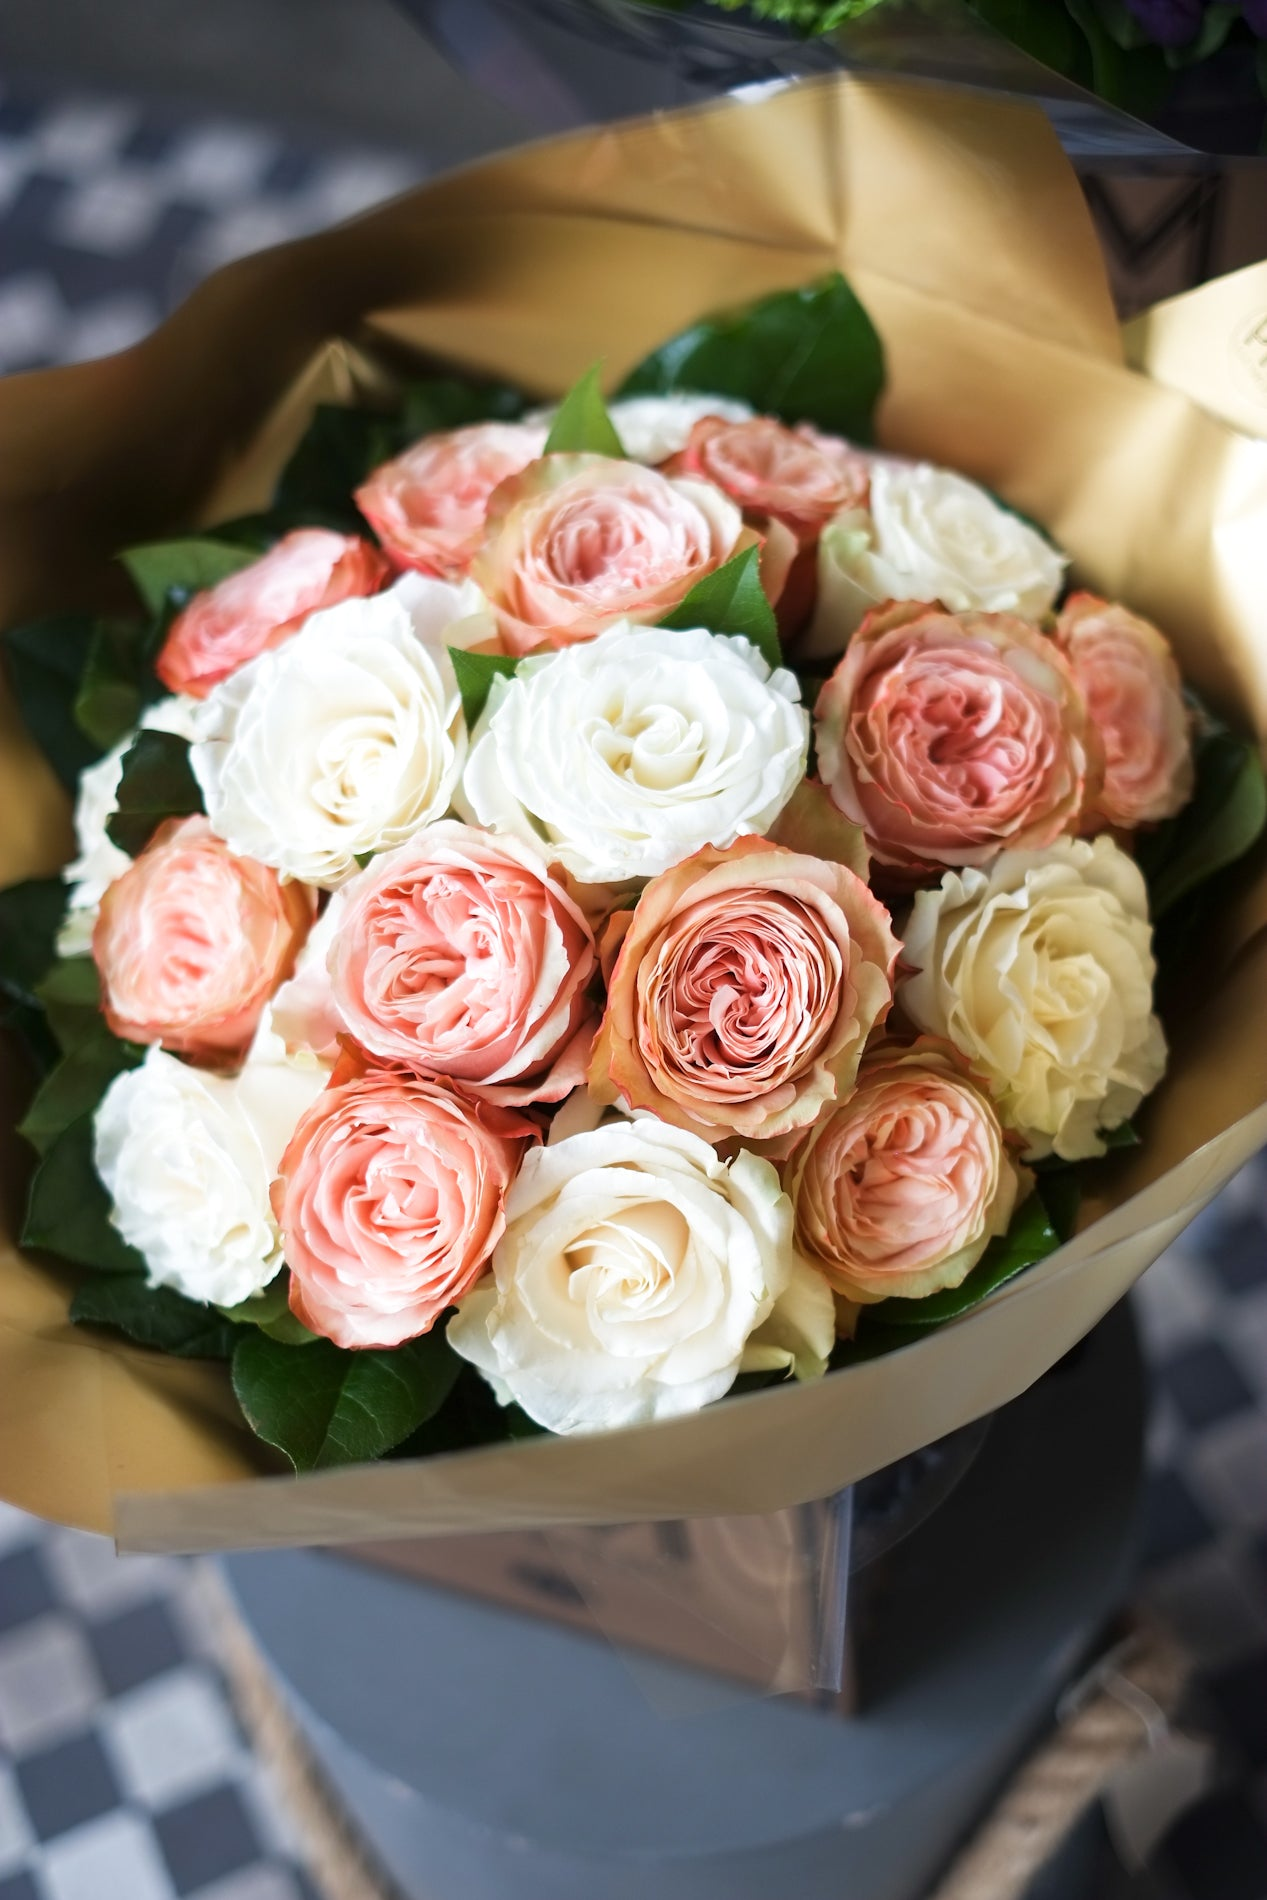 White velvet flowers in London. Bouquet is elegant and sophisticated bouquet combines premium White roses with an exquisite champagne-cream-powder-peach rose